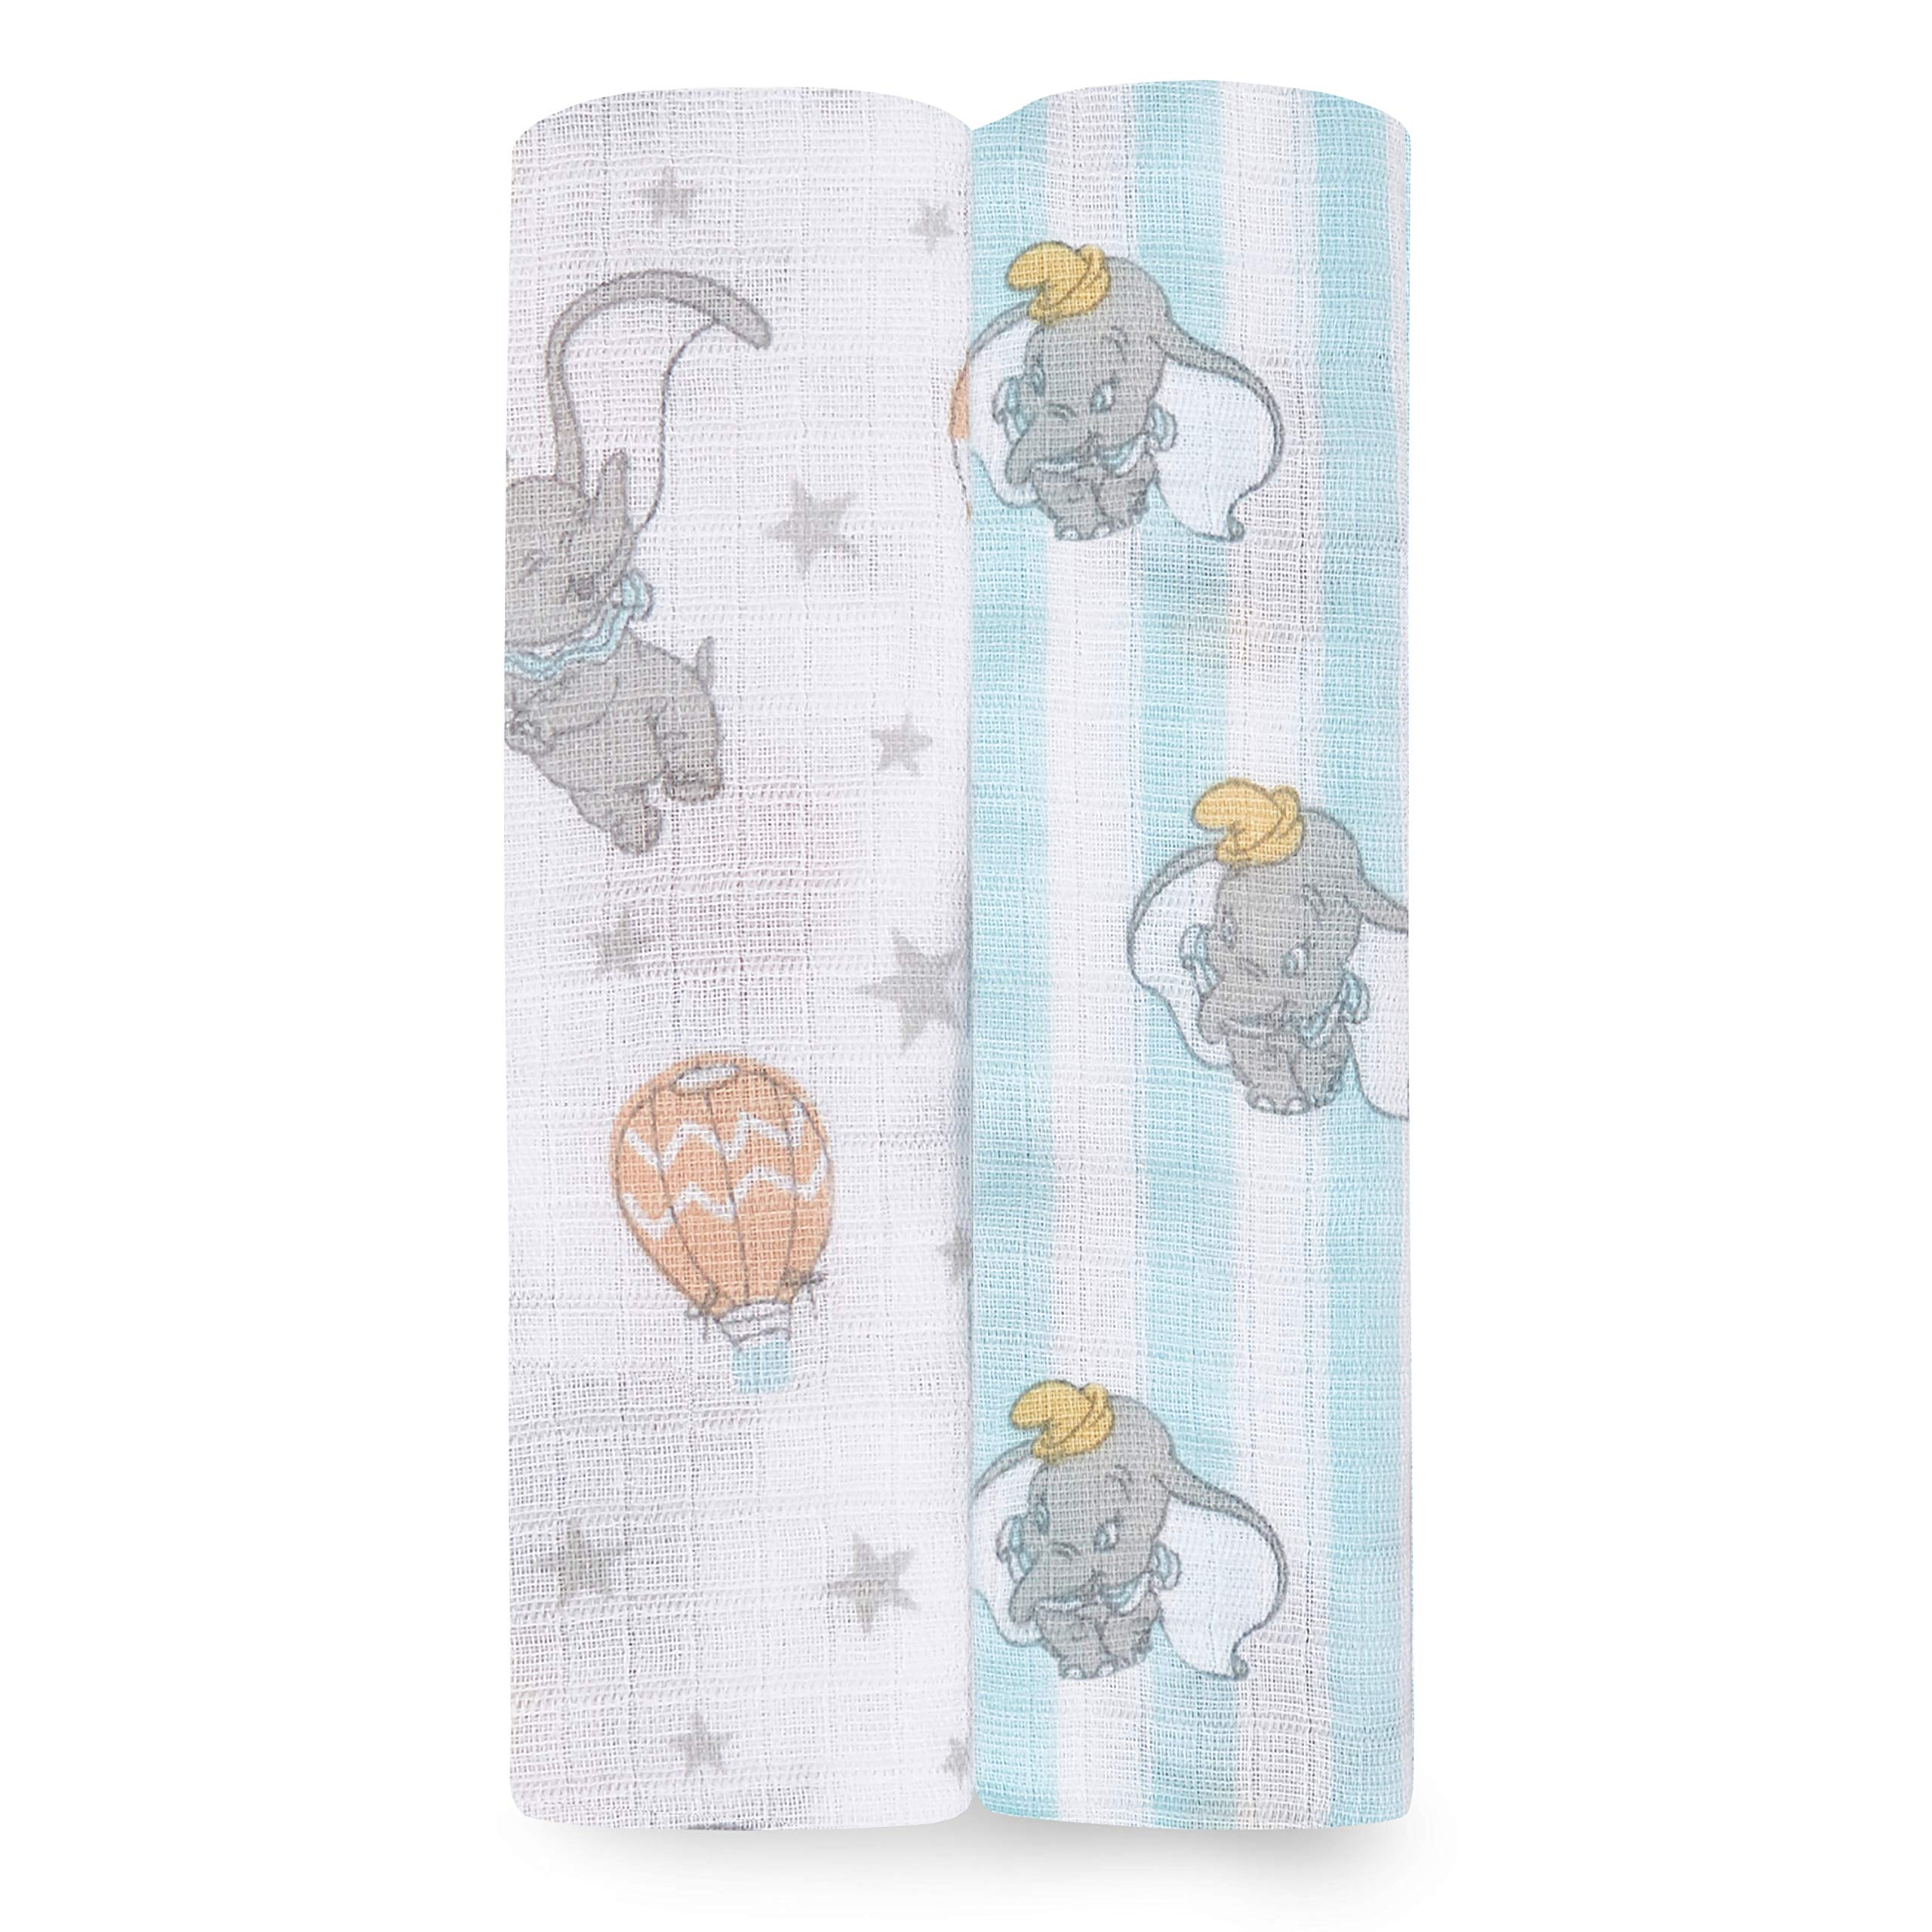 Aden by aden + anais Swaddle Blanket, Muslin Blankets for Girls & Boys, Baby Receiving Swaddles, Ideal Newborn Gifts, Unisex Infant Shower Items, Toddler Gift, Wearable Swaddling Set, 2 Pack, Dumbo